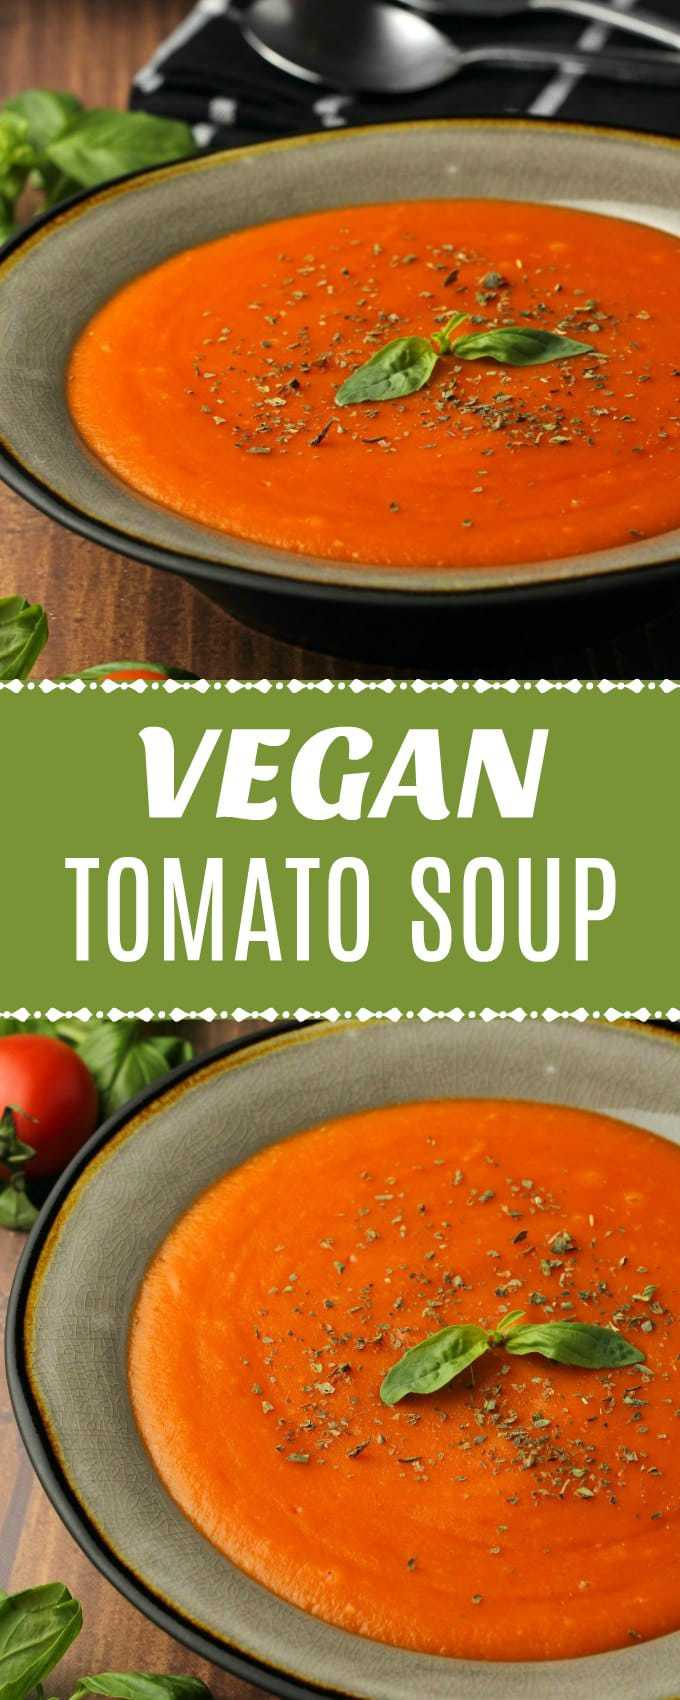 Rich and creamy vegan tomato soup. Hearty and satisfying and ideal as an appetizer, served with delicious bread for dipping. Gluten-free. | lovingitvegan.com